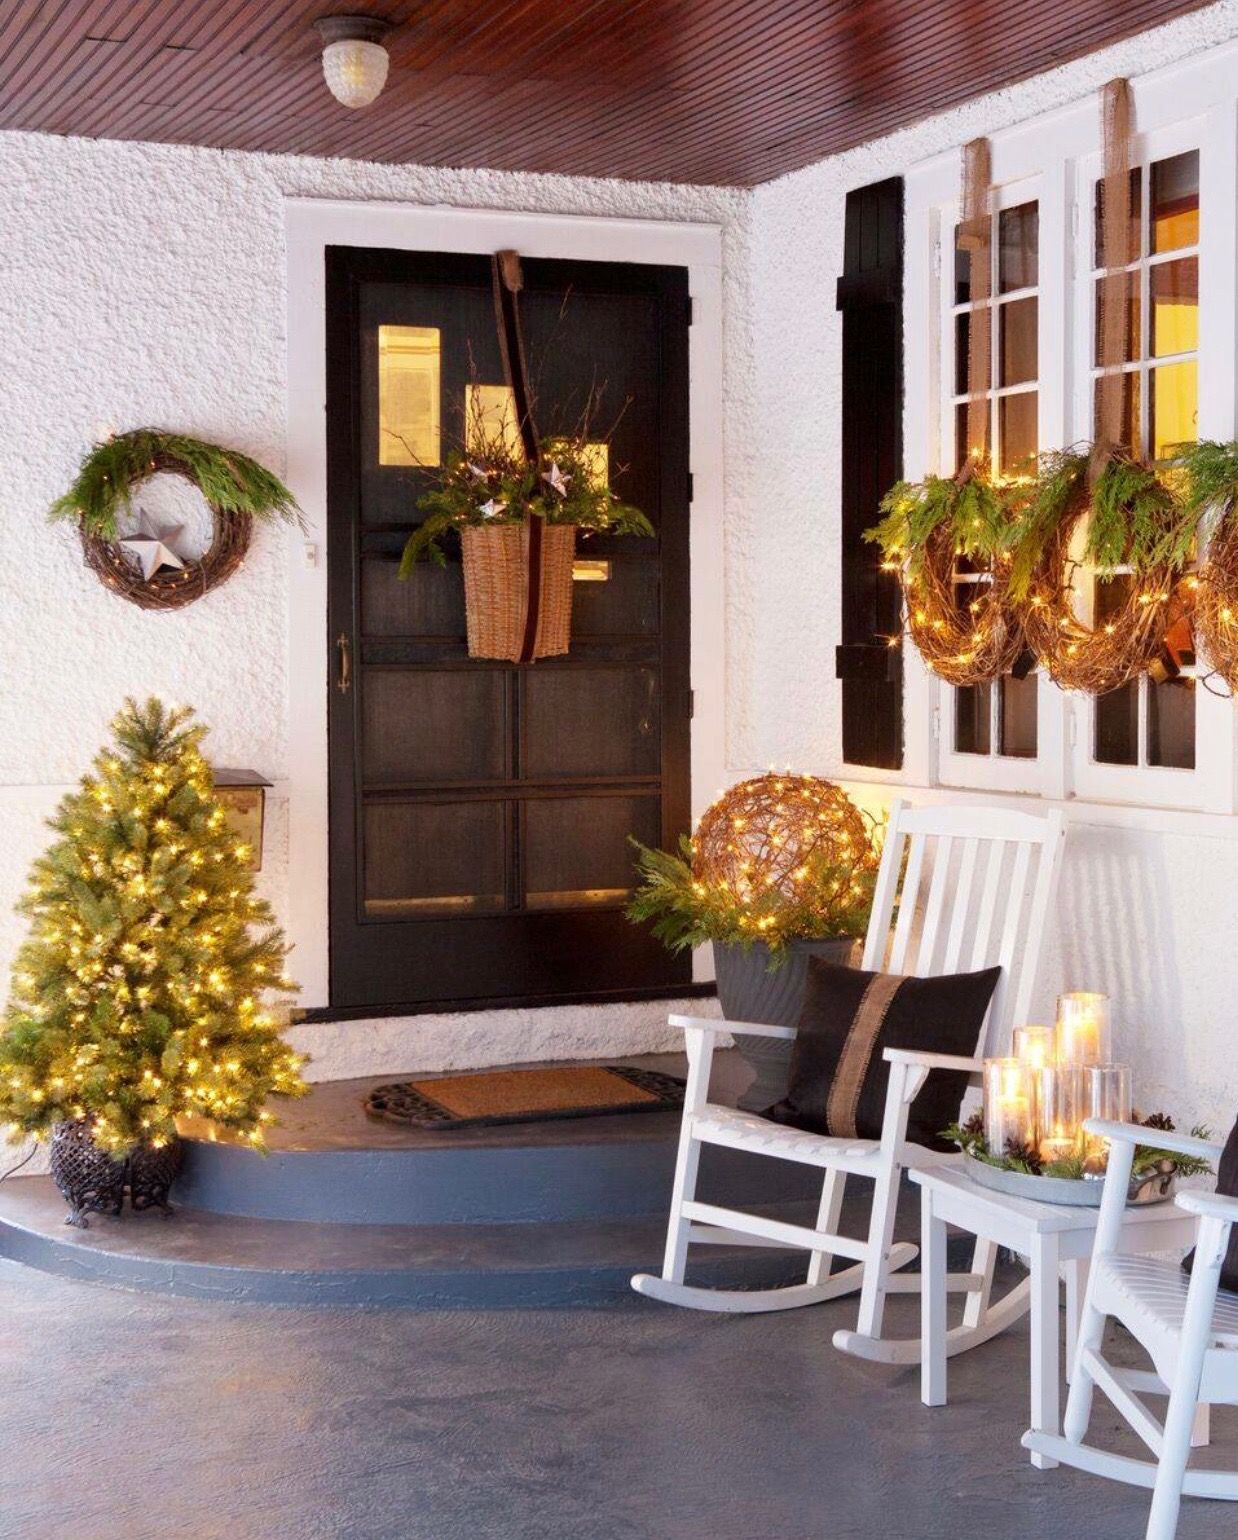 Pin by Brandon Liebmann on Christmas Outdoor decor